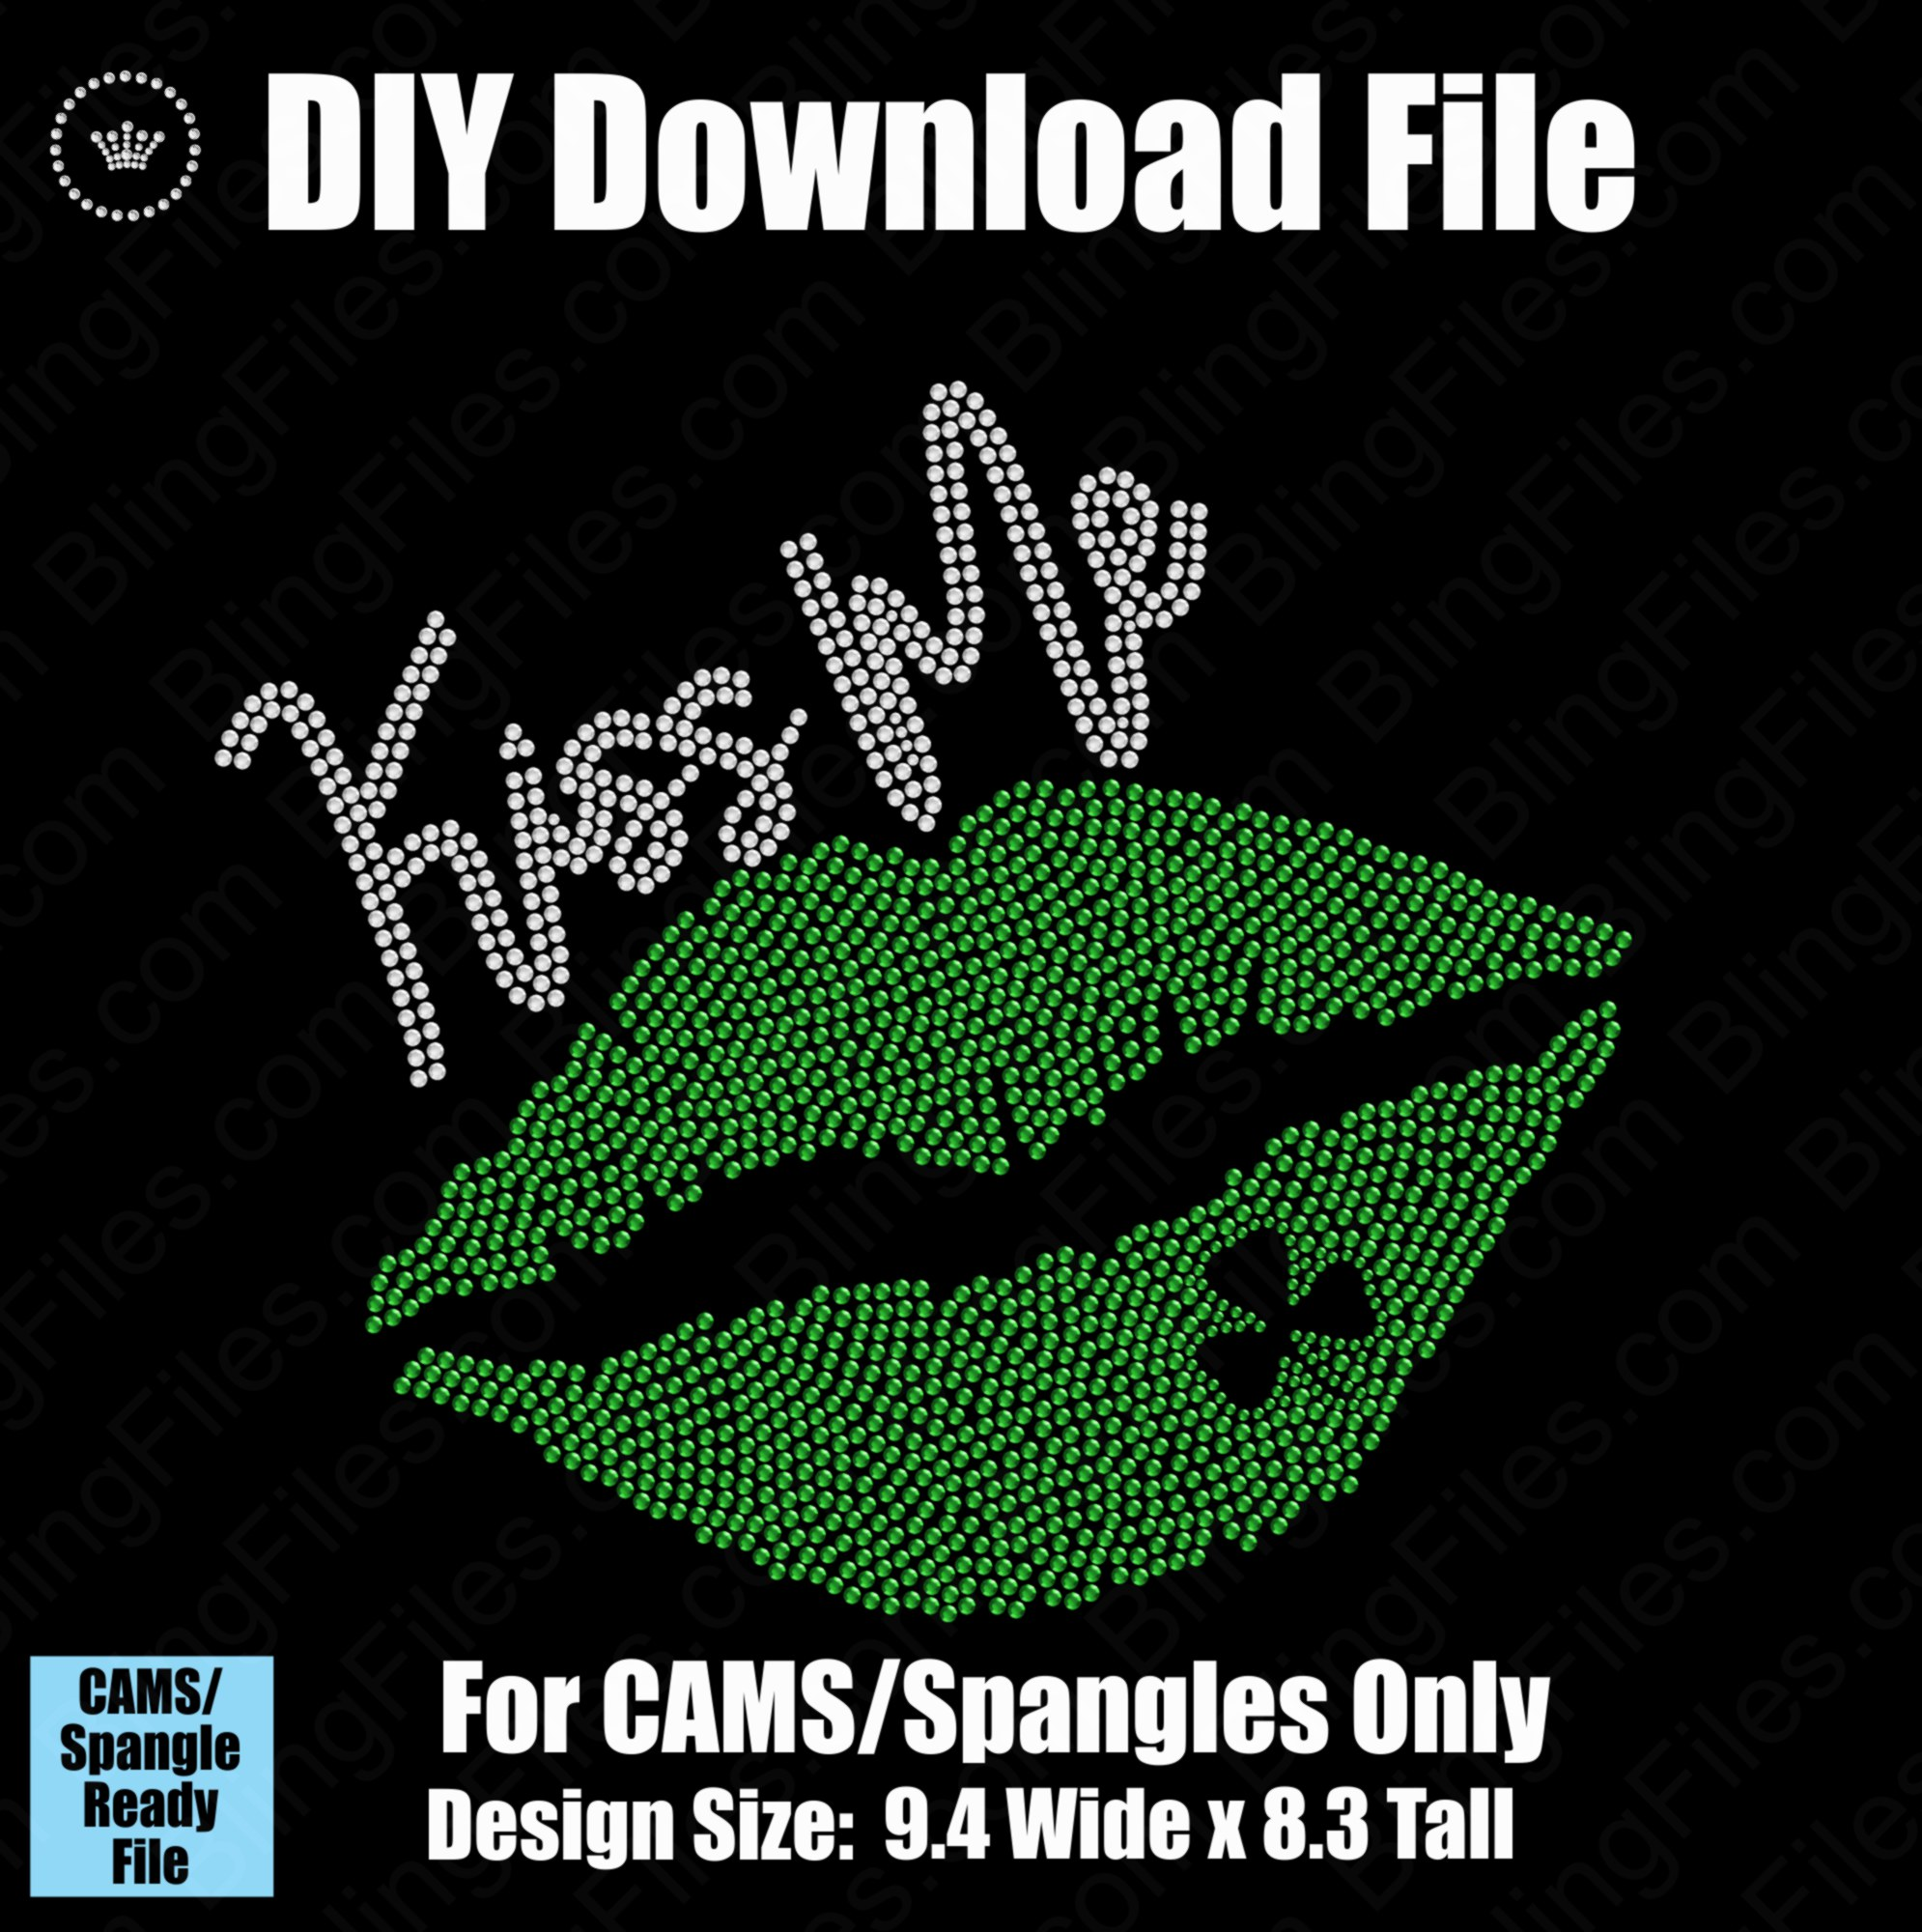 Kiss Me St Patty's Shamrock Day Lips Download File - CAMS/ProSpangle